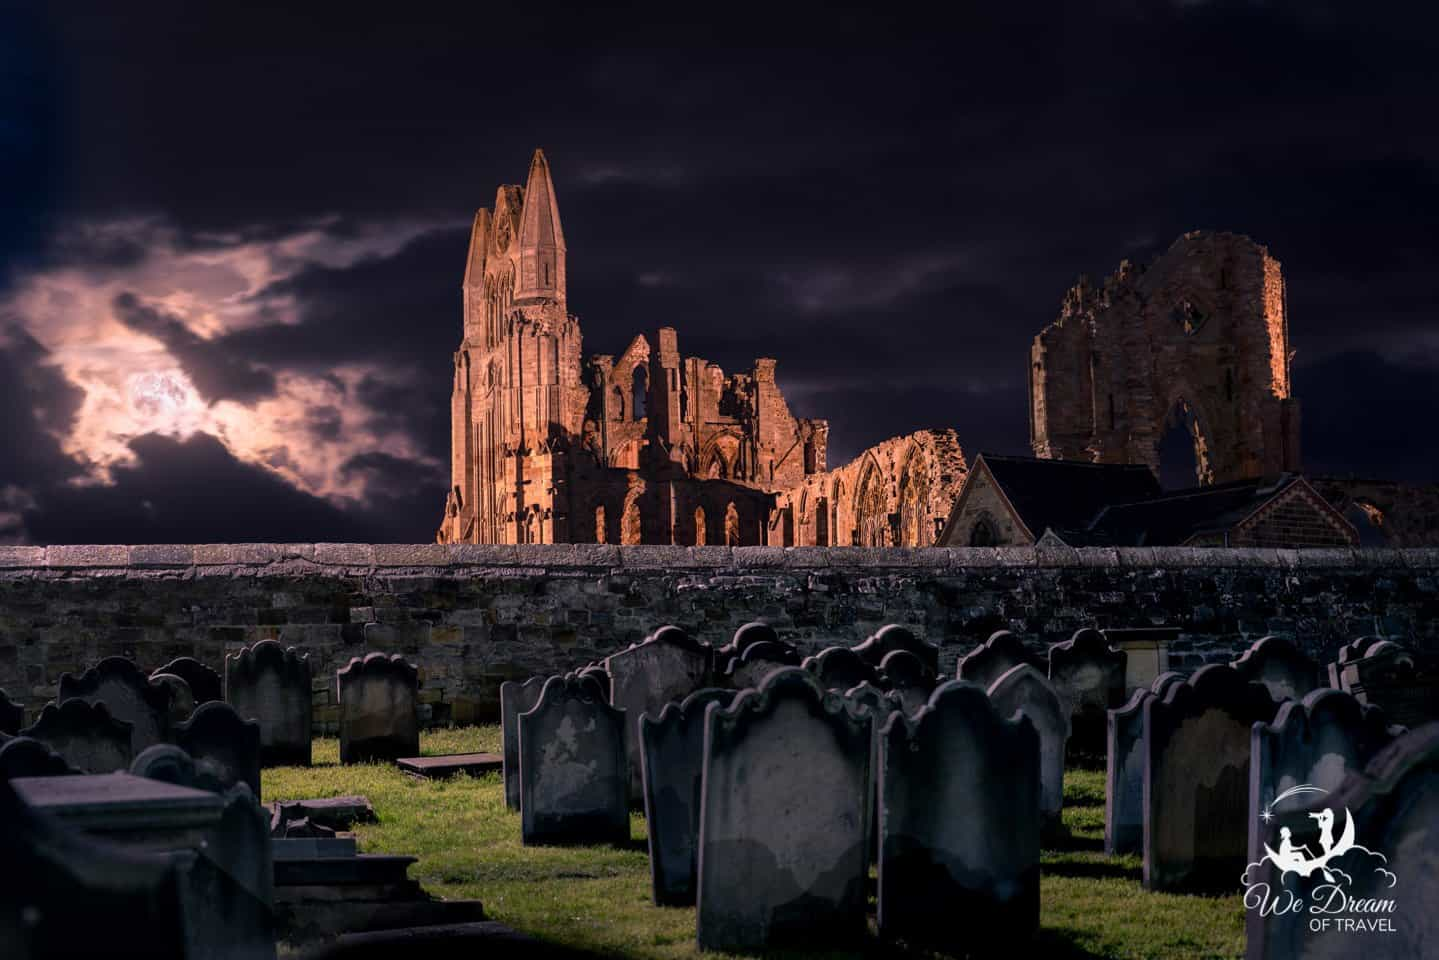 Whitby Abbey and St Mary's Church graveyard at night - inspiration for Dracula and a top thing to see in Whitby